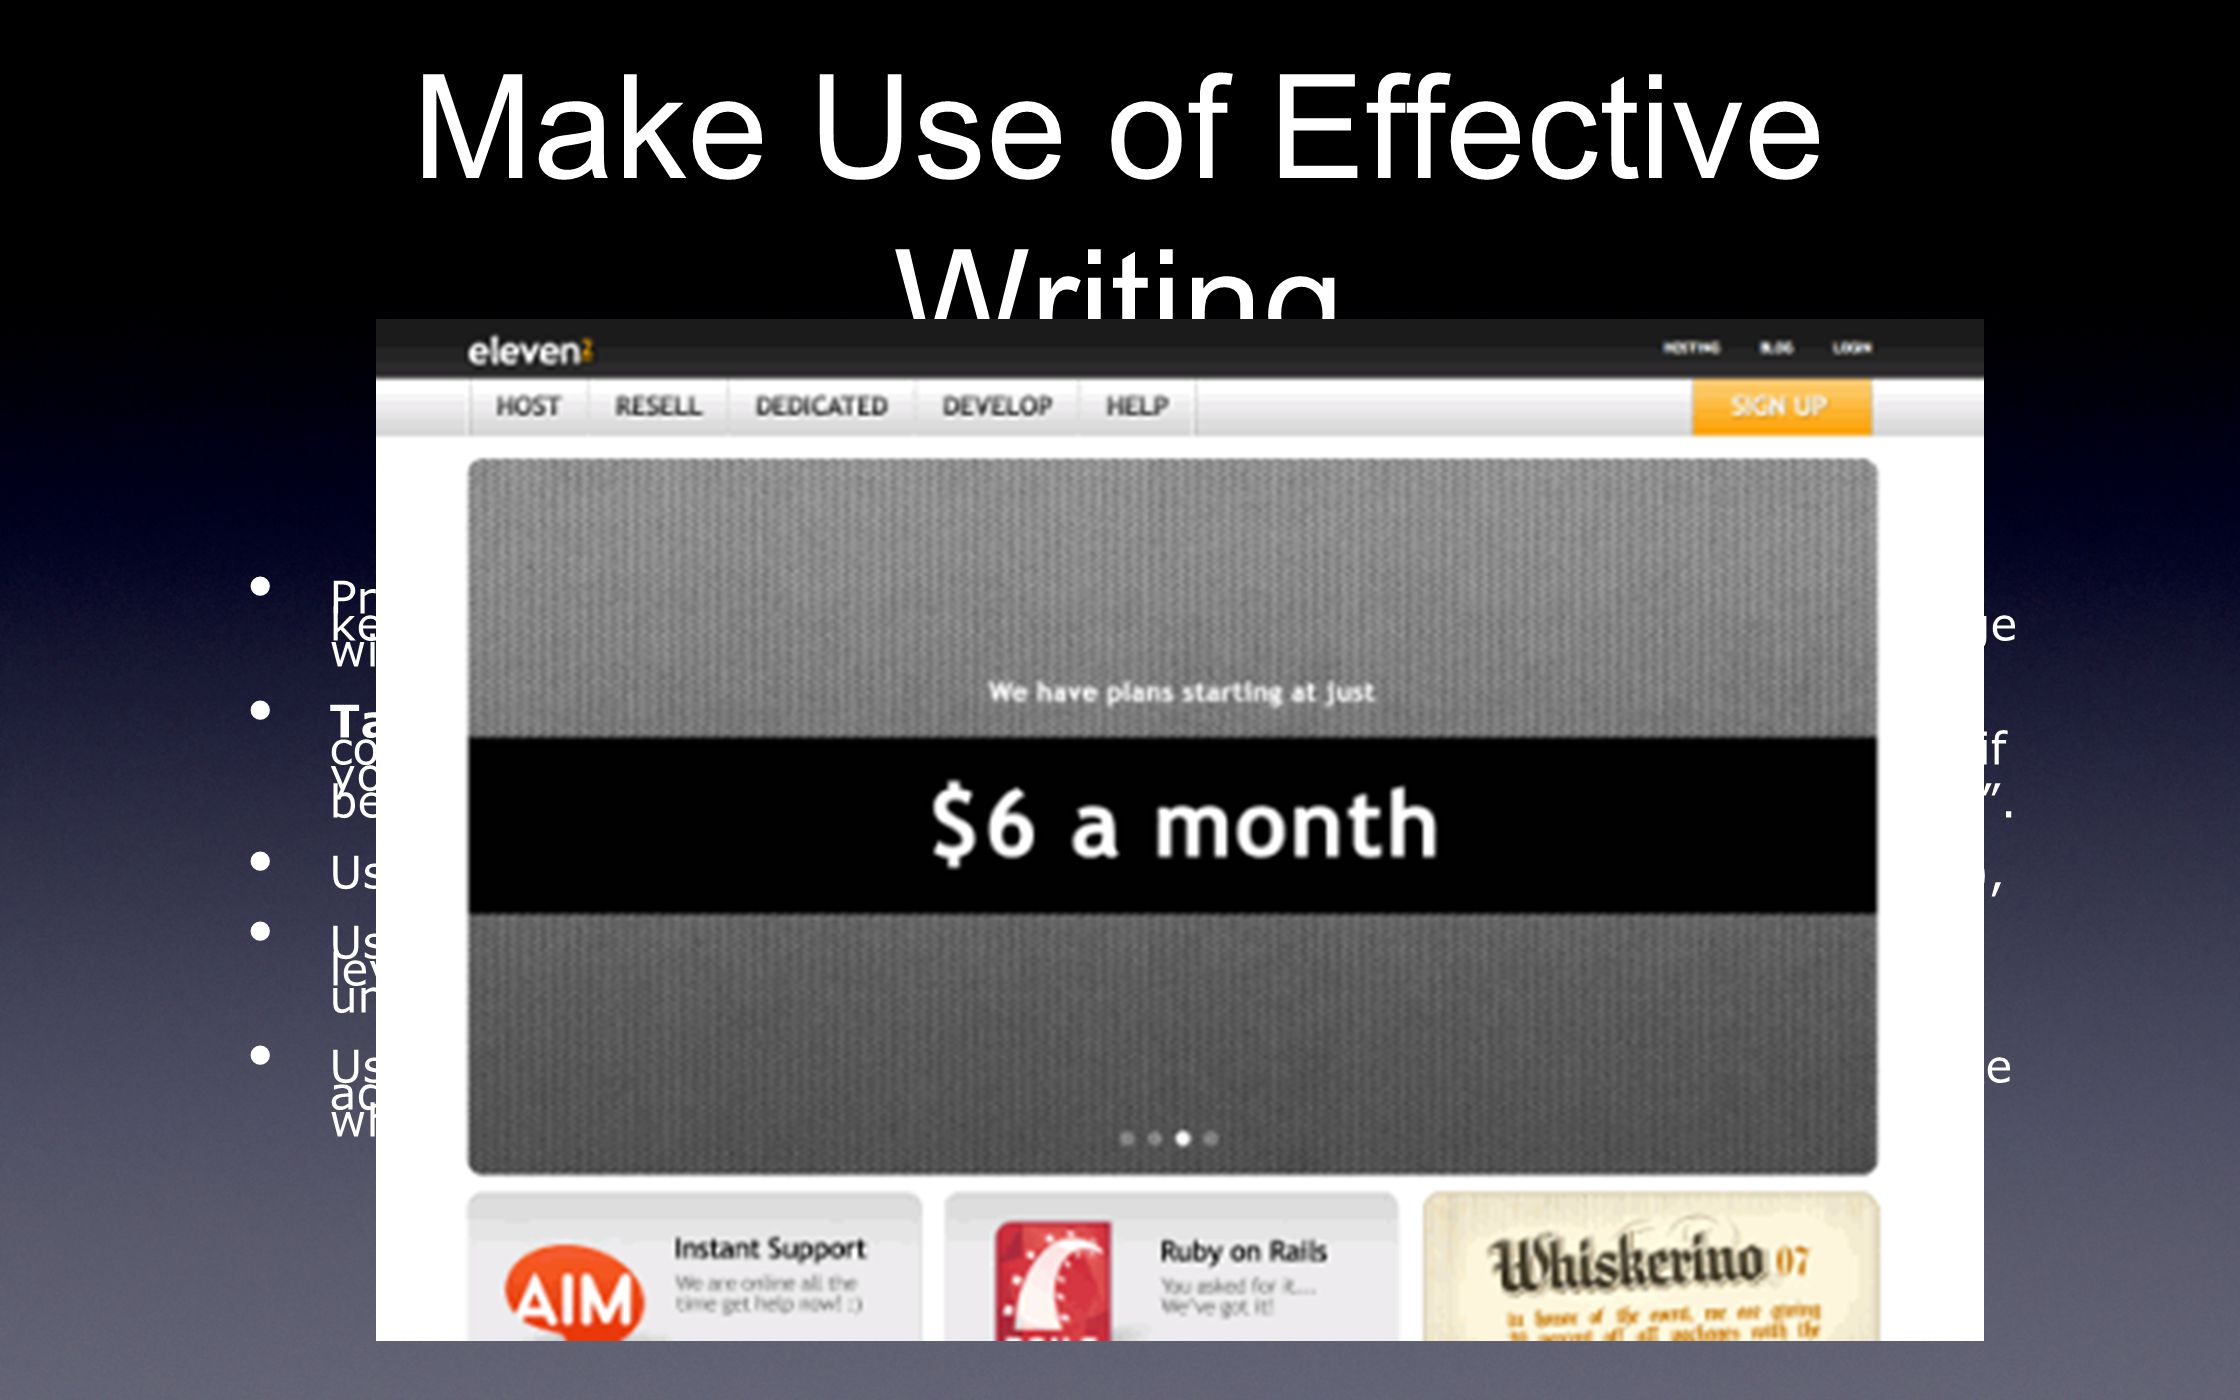 Make Use of Effective Writing